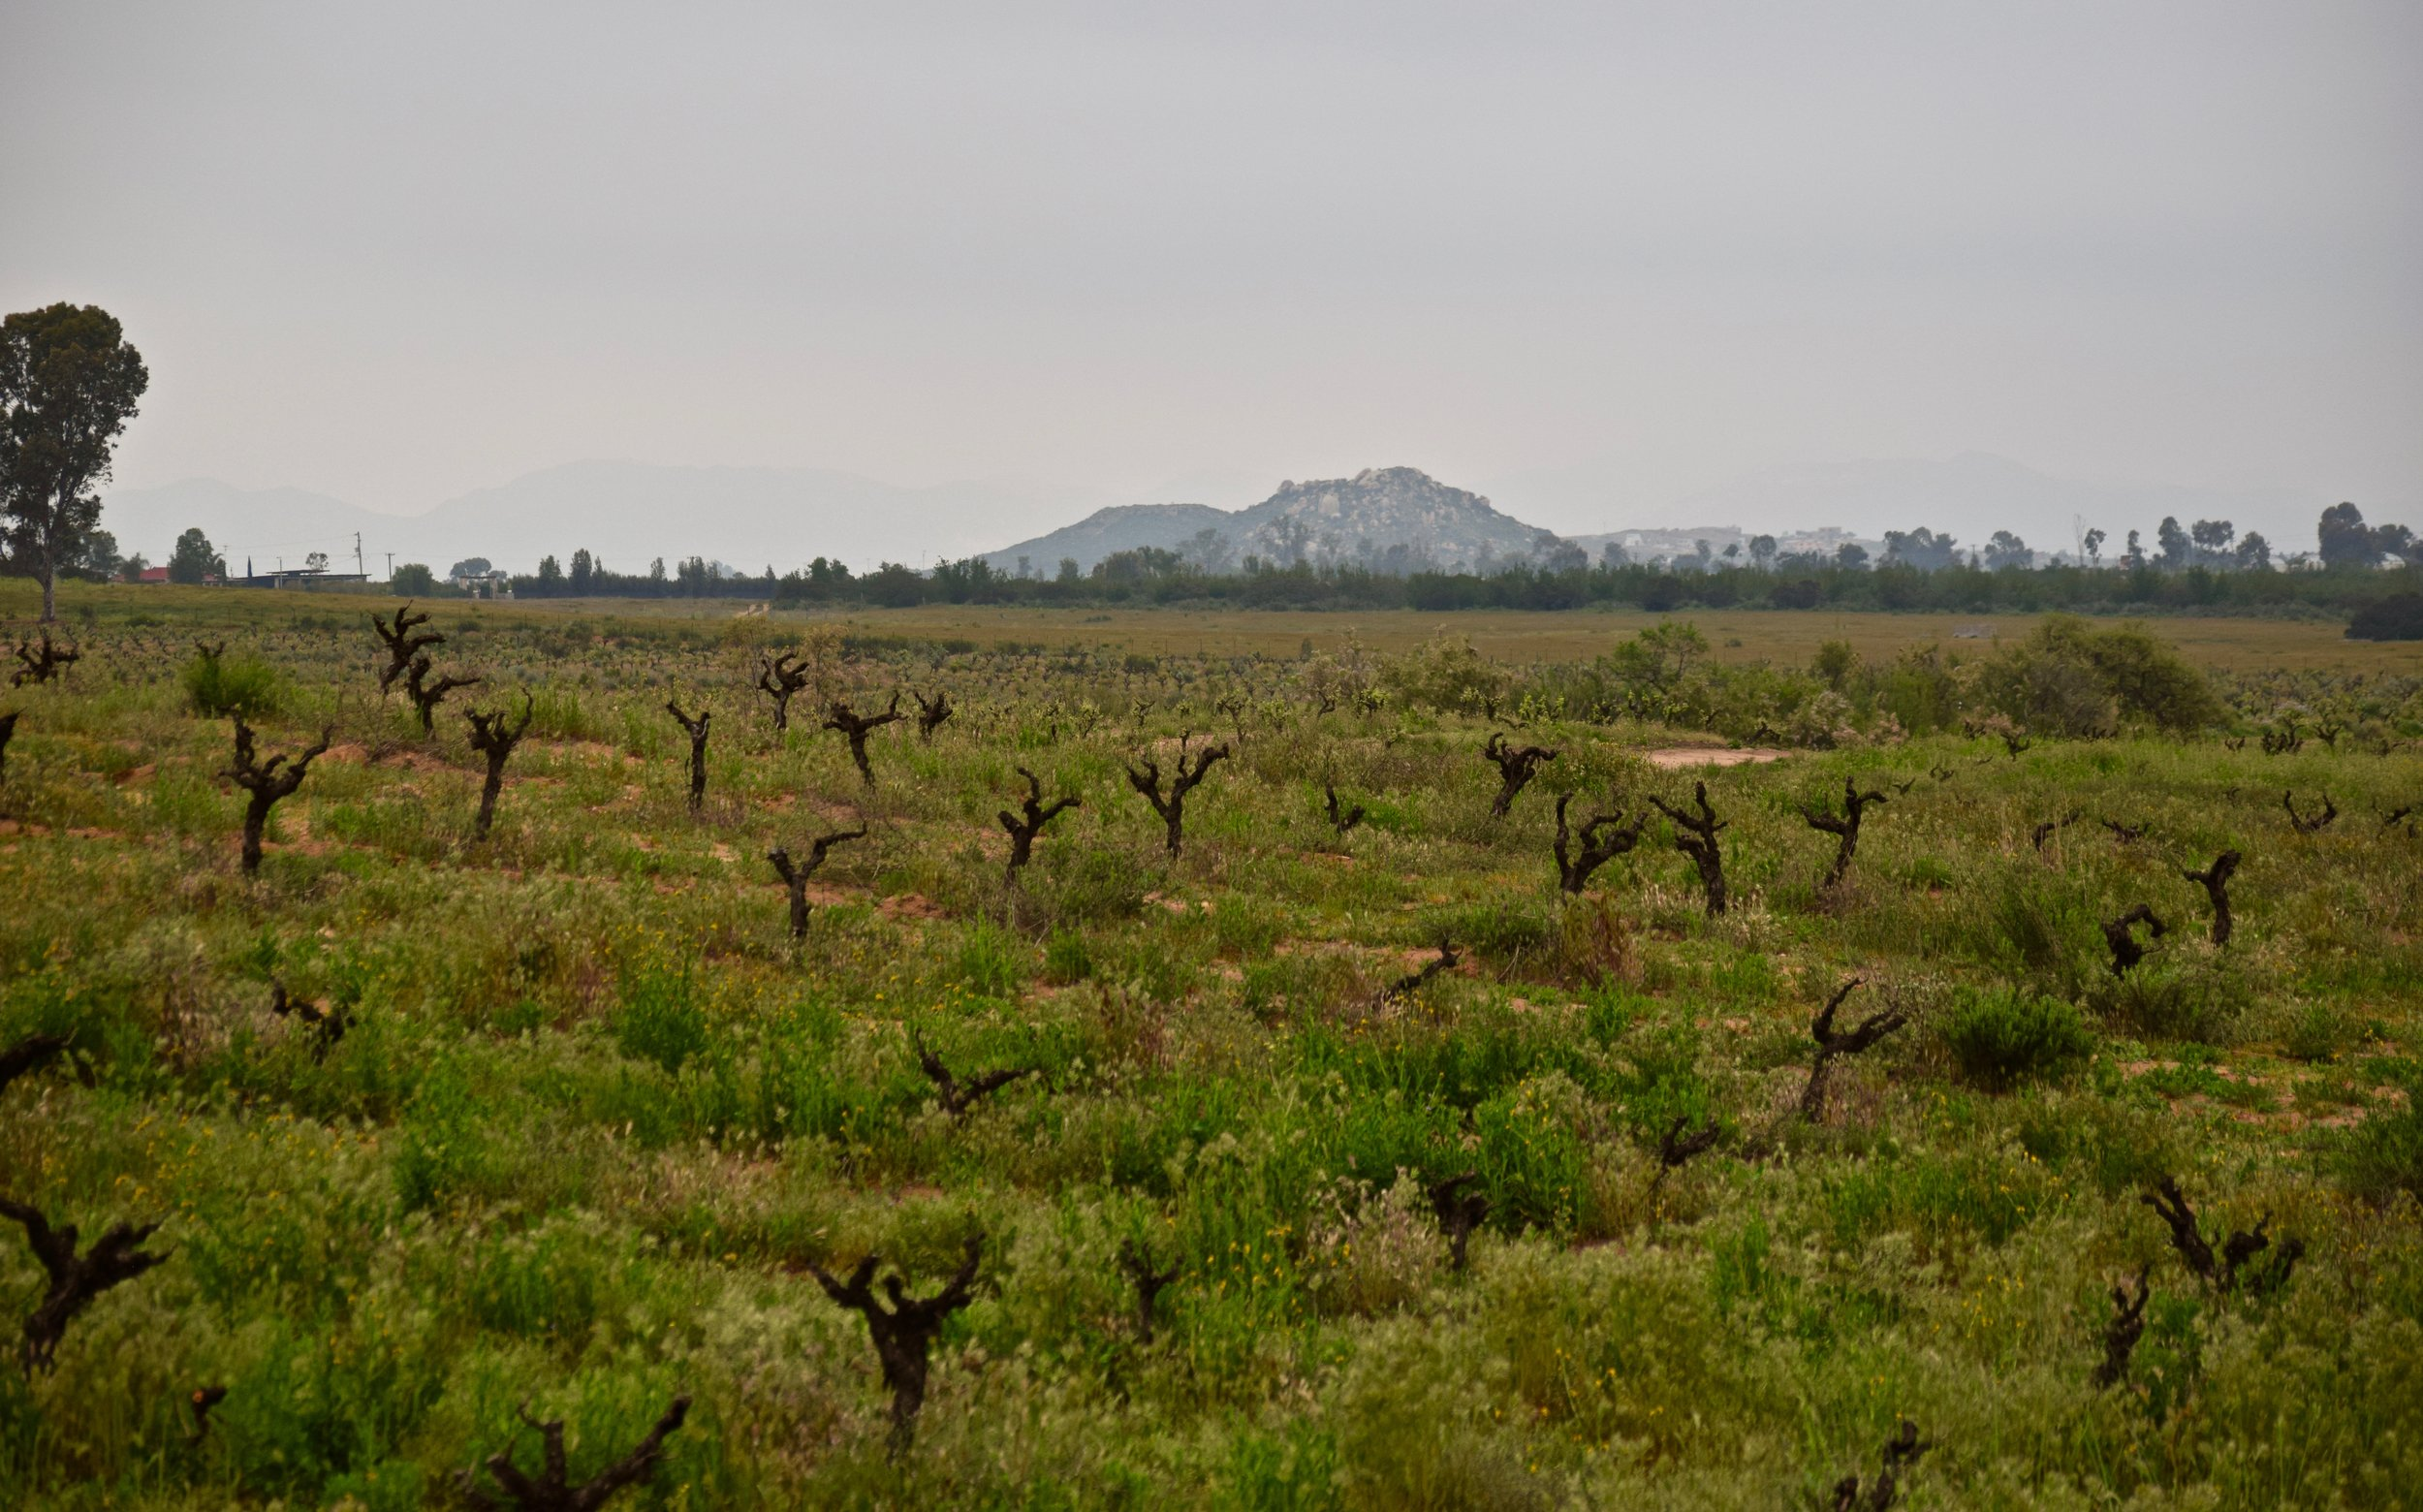 Old vines in Valle de Guadalupe. Photo by Gabriel Manzo.